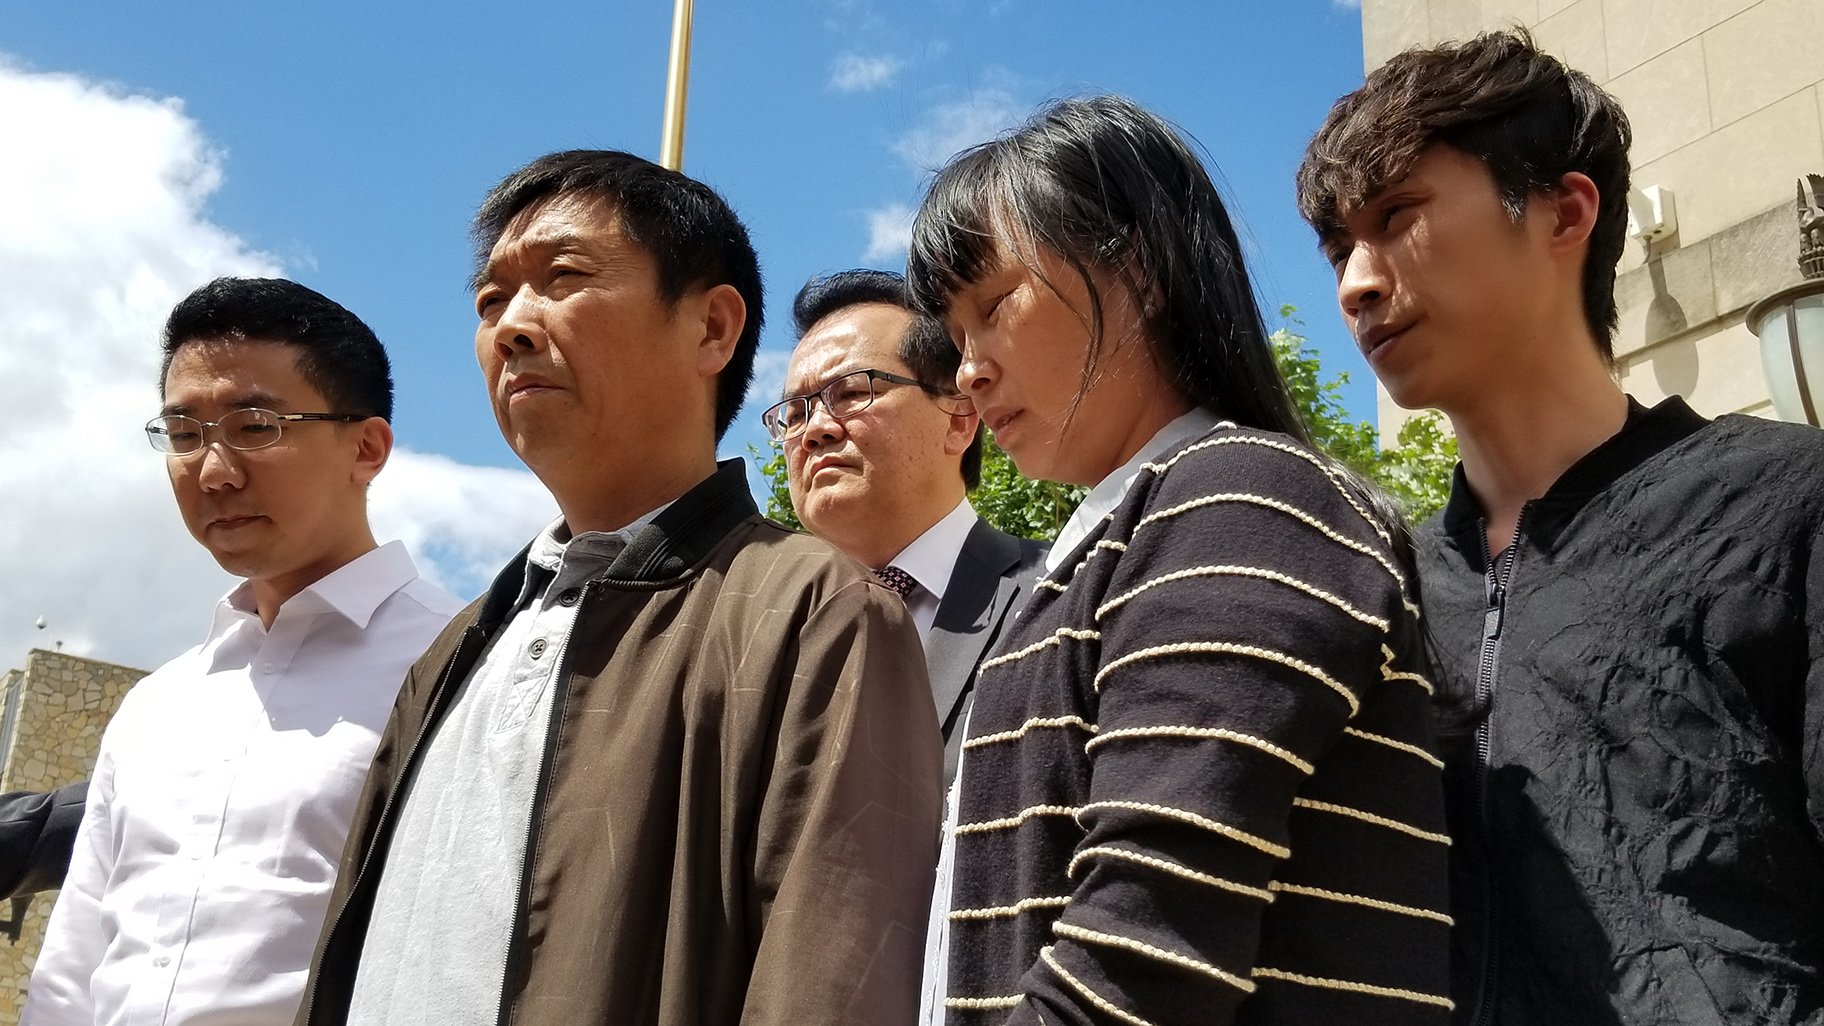 Yingying Zhang's family met with media outside the Peoria federal court building following Brendt Christensen's conviction on June 24, 2019. (Matt Masterson / WTTW News)